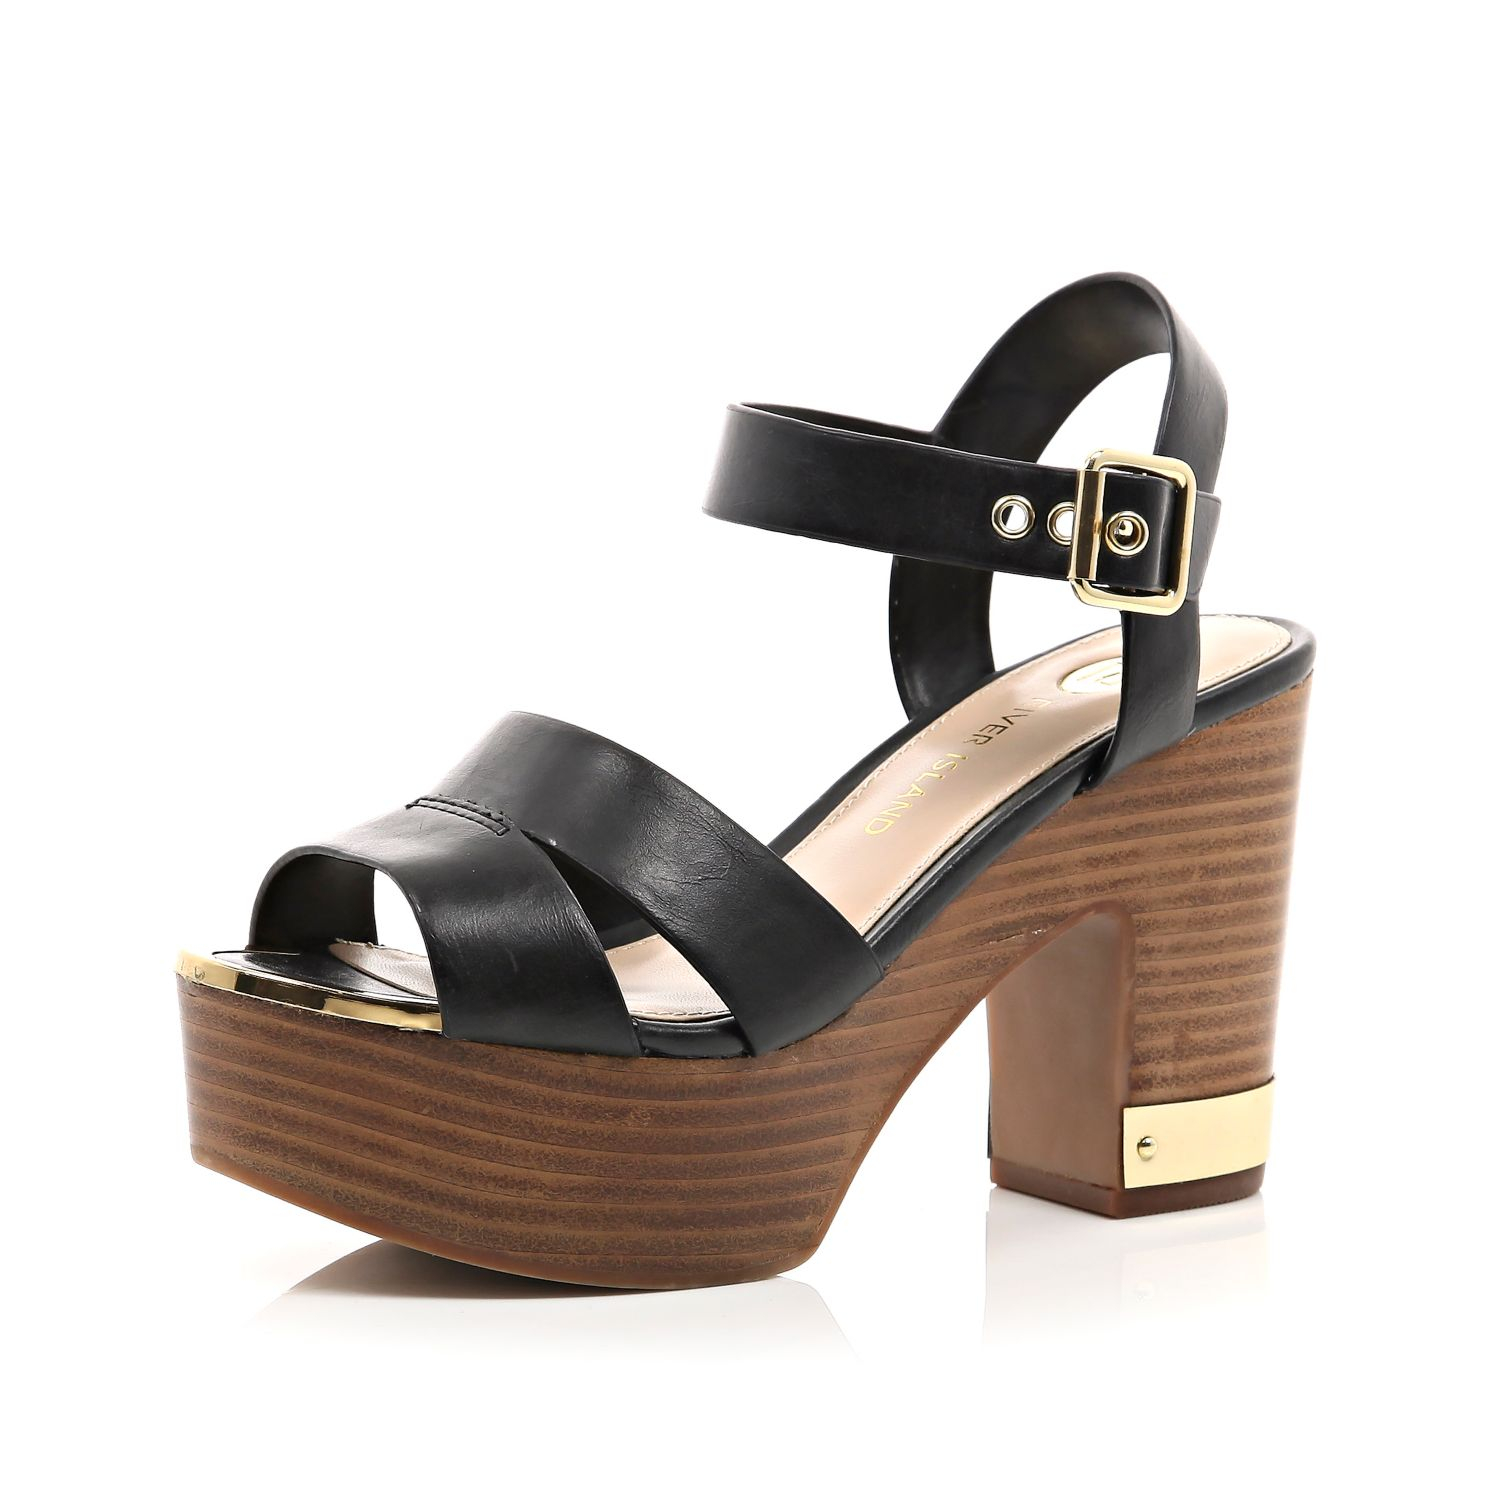 c2b7fcd270e River Island Black Wood Effect Heel Platform Sandals in Black - Lyst